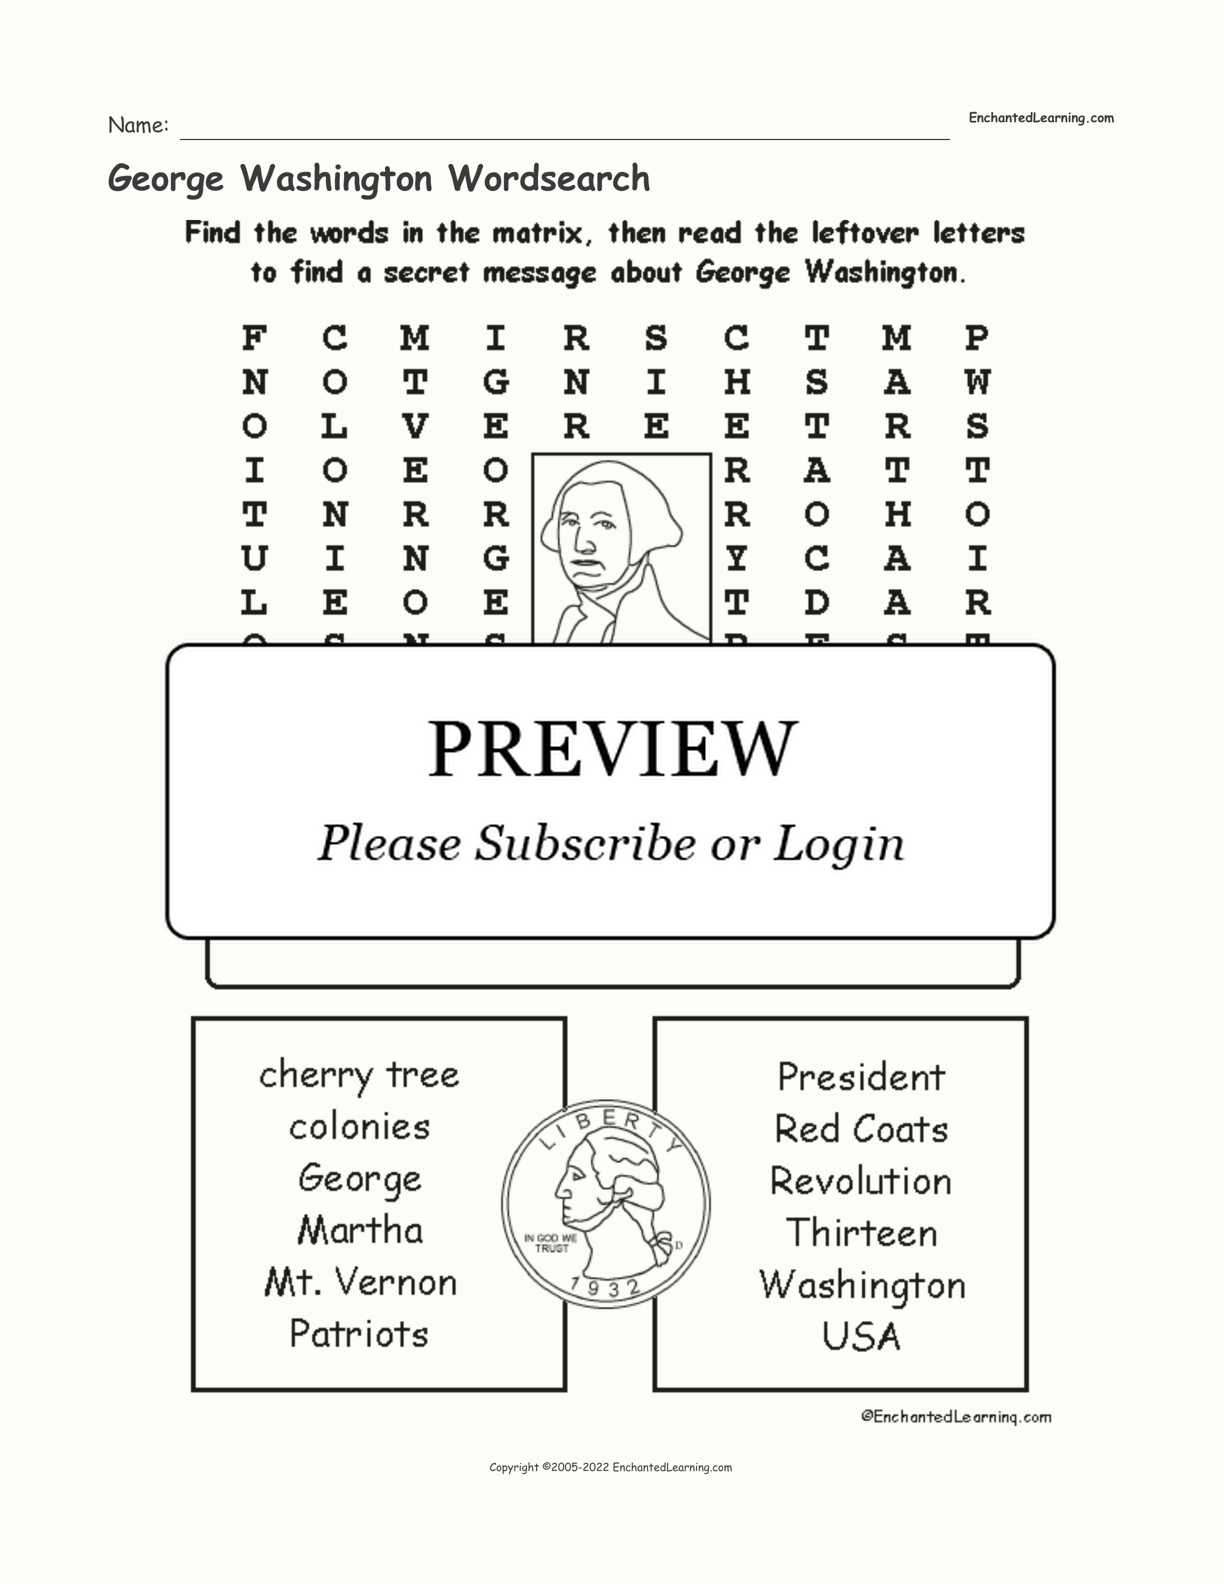 George Washington Wordsearch interactive worksheet page 1